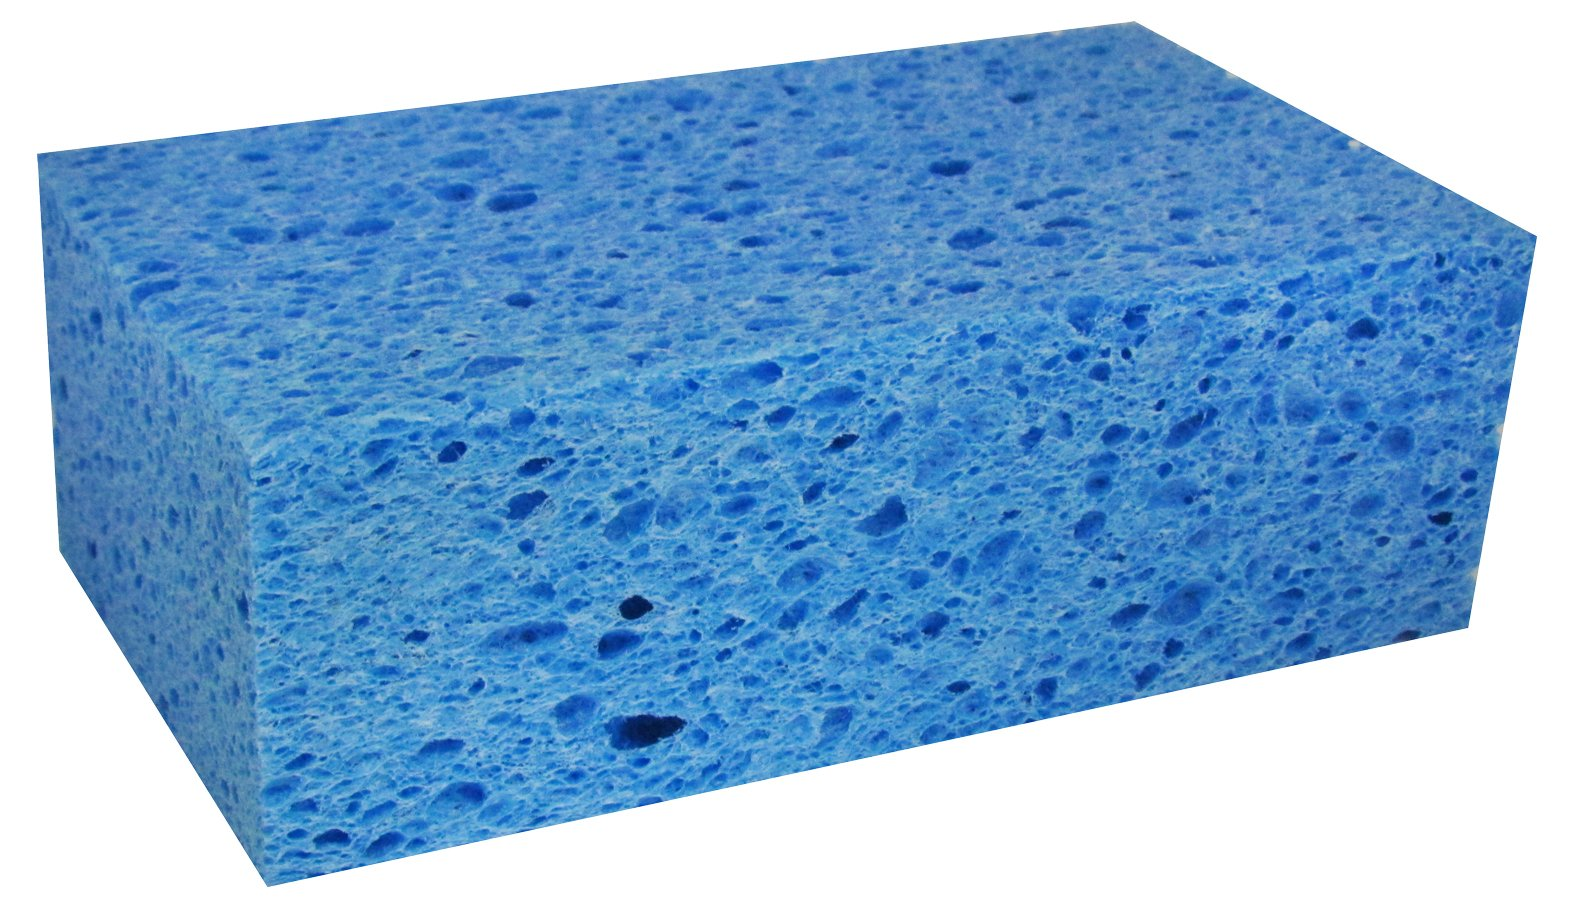 Star brite Cellulose Big Boat Bail Sponge 7 3/4 X 4 1/4 X 2 3/4